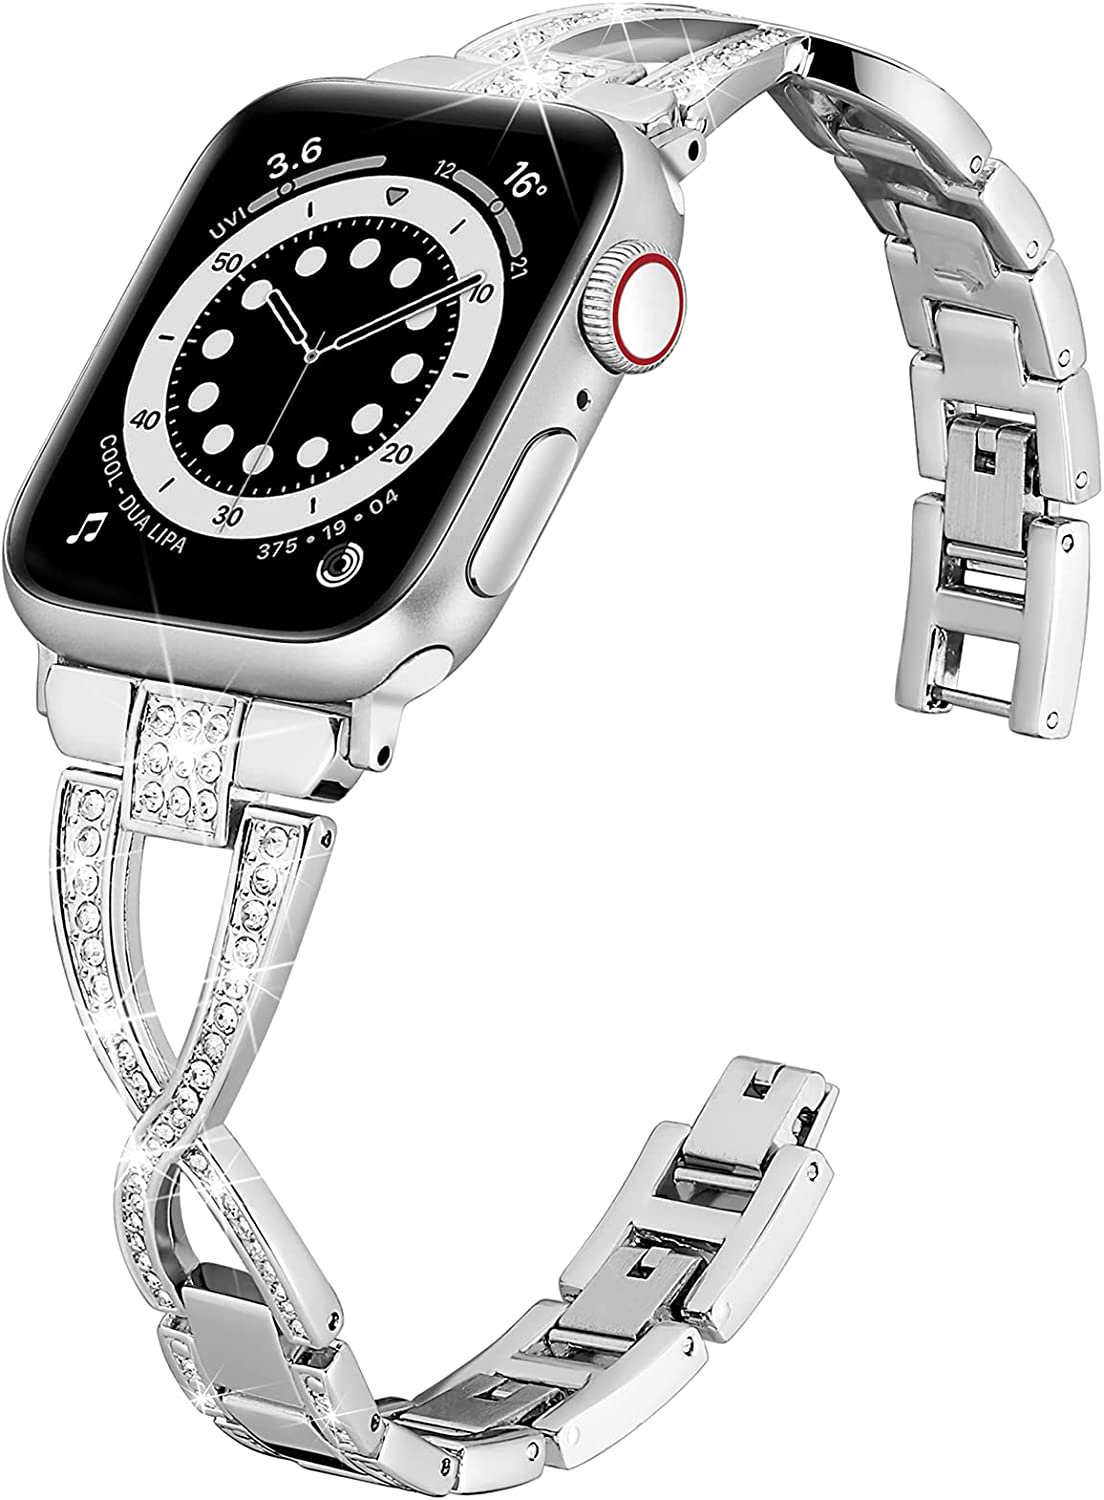 Wipalor Compatible with Apple Watch Band 42mm 44mm, Lightweight for Women, Easy Adjustable Bracelet, Bling Shiny Diamond Both Sides, Jewelry Metal Strap for iWatch Series 6 5 4 3 2 1 SE(Silver)